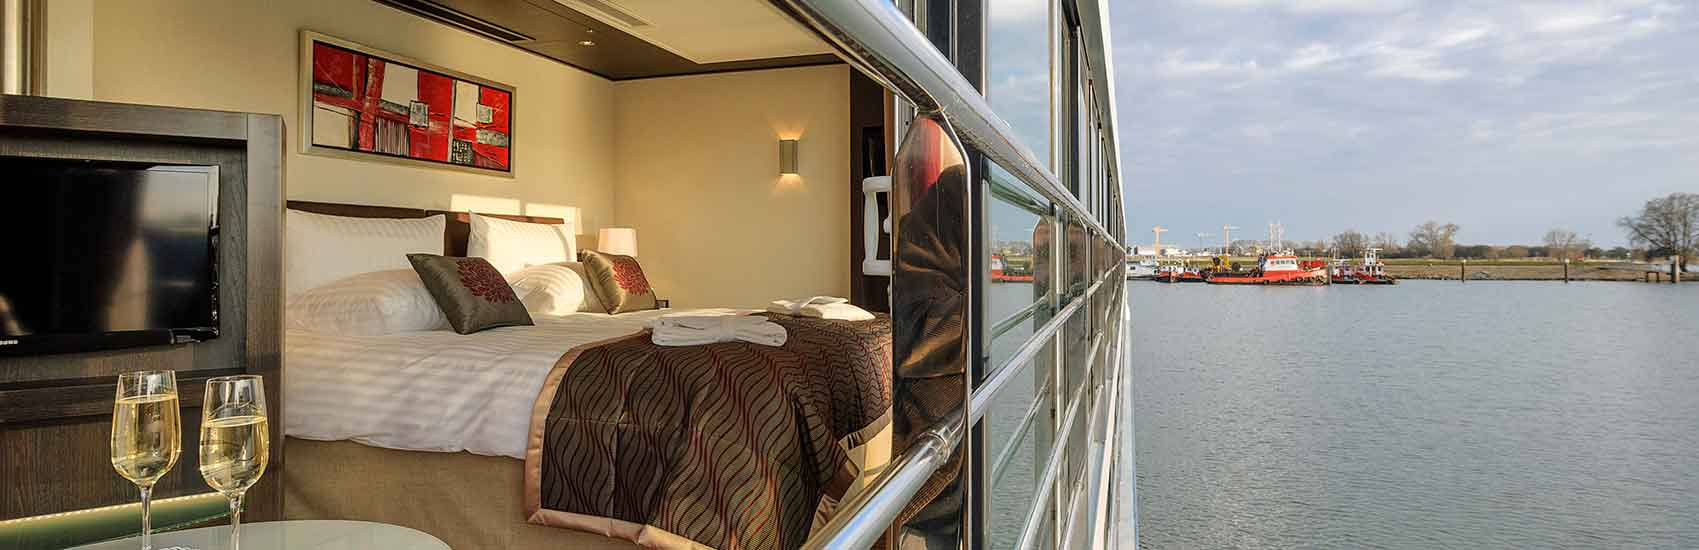 Exclusive Offer With AmaWaterways 4